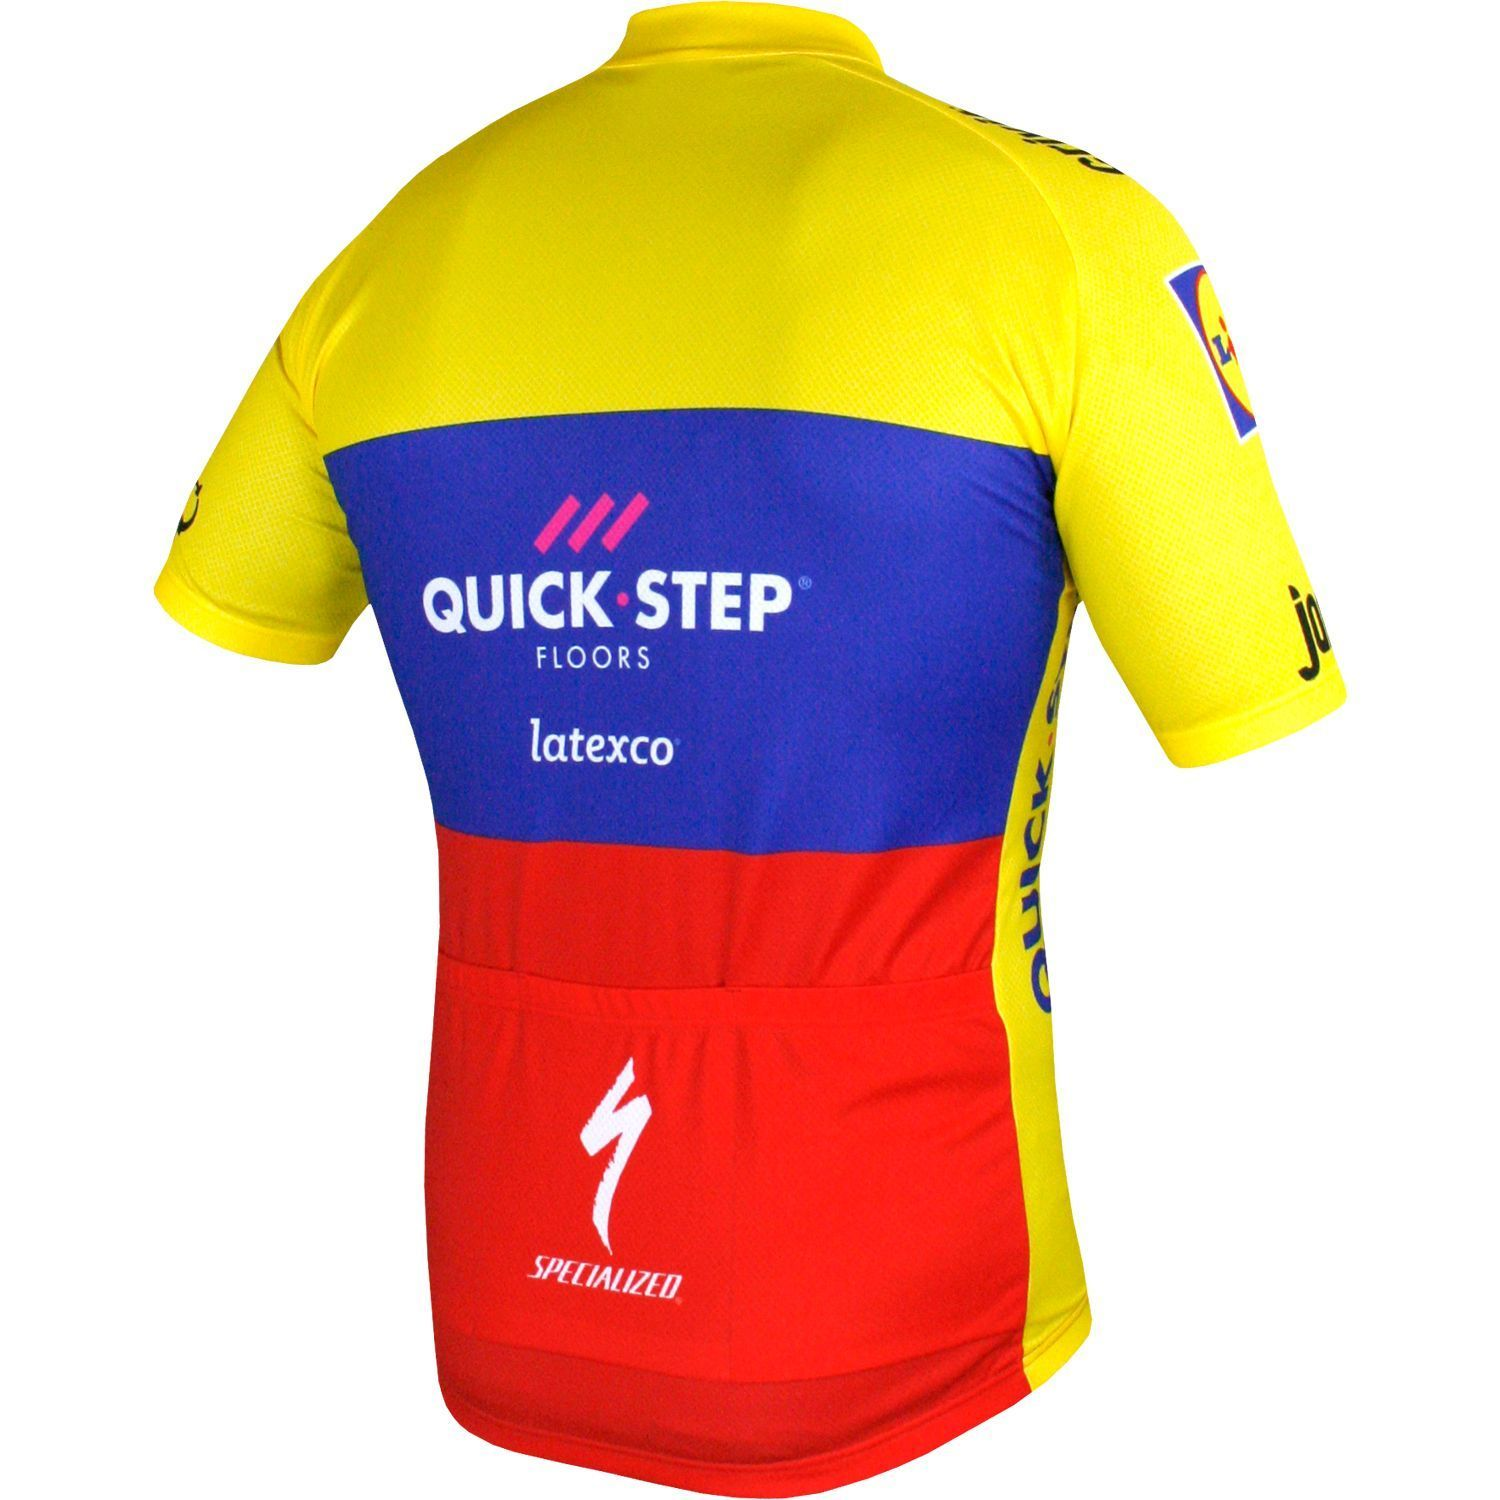 Trikotexpress quick step floors ecuador champ 2018 short for Quick step floors cycling team